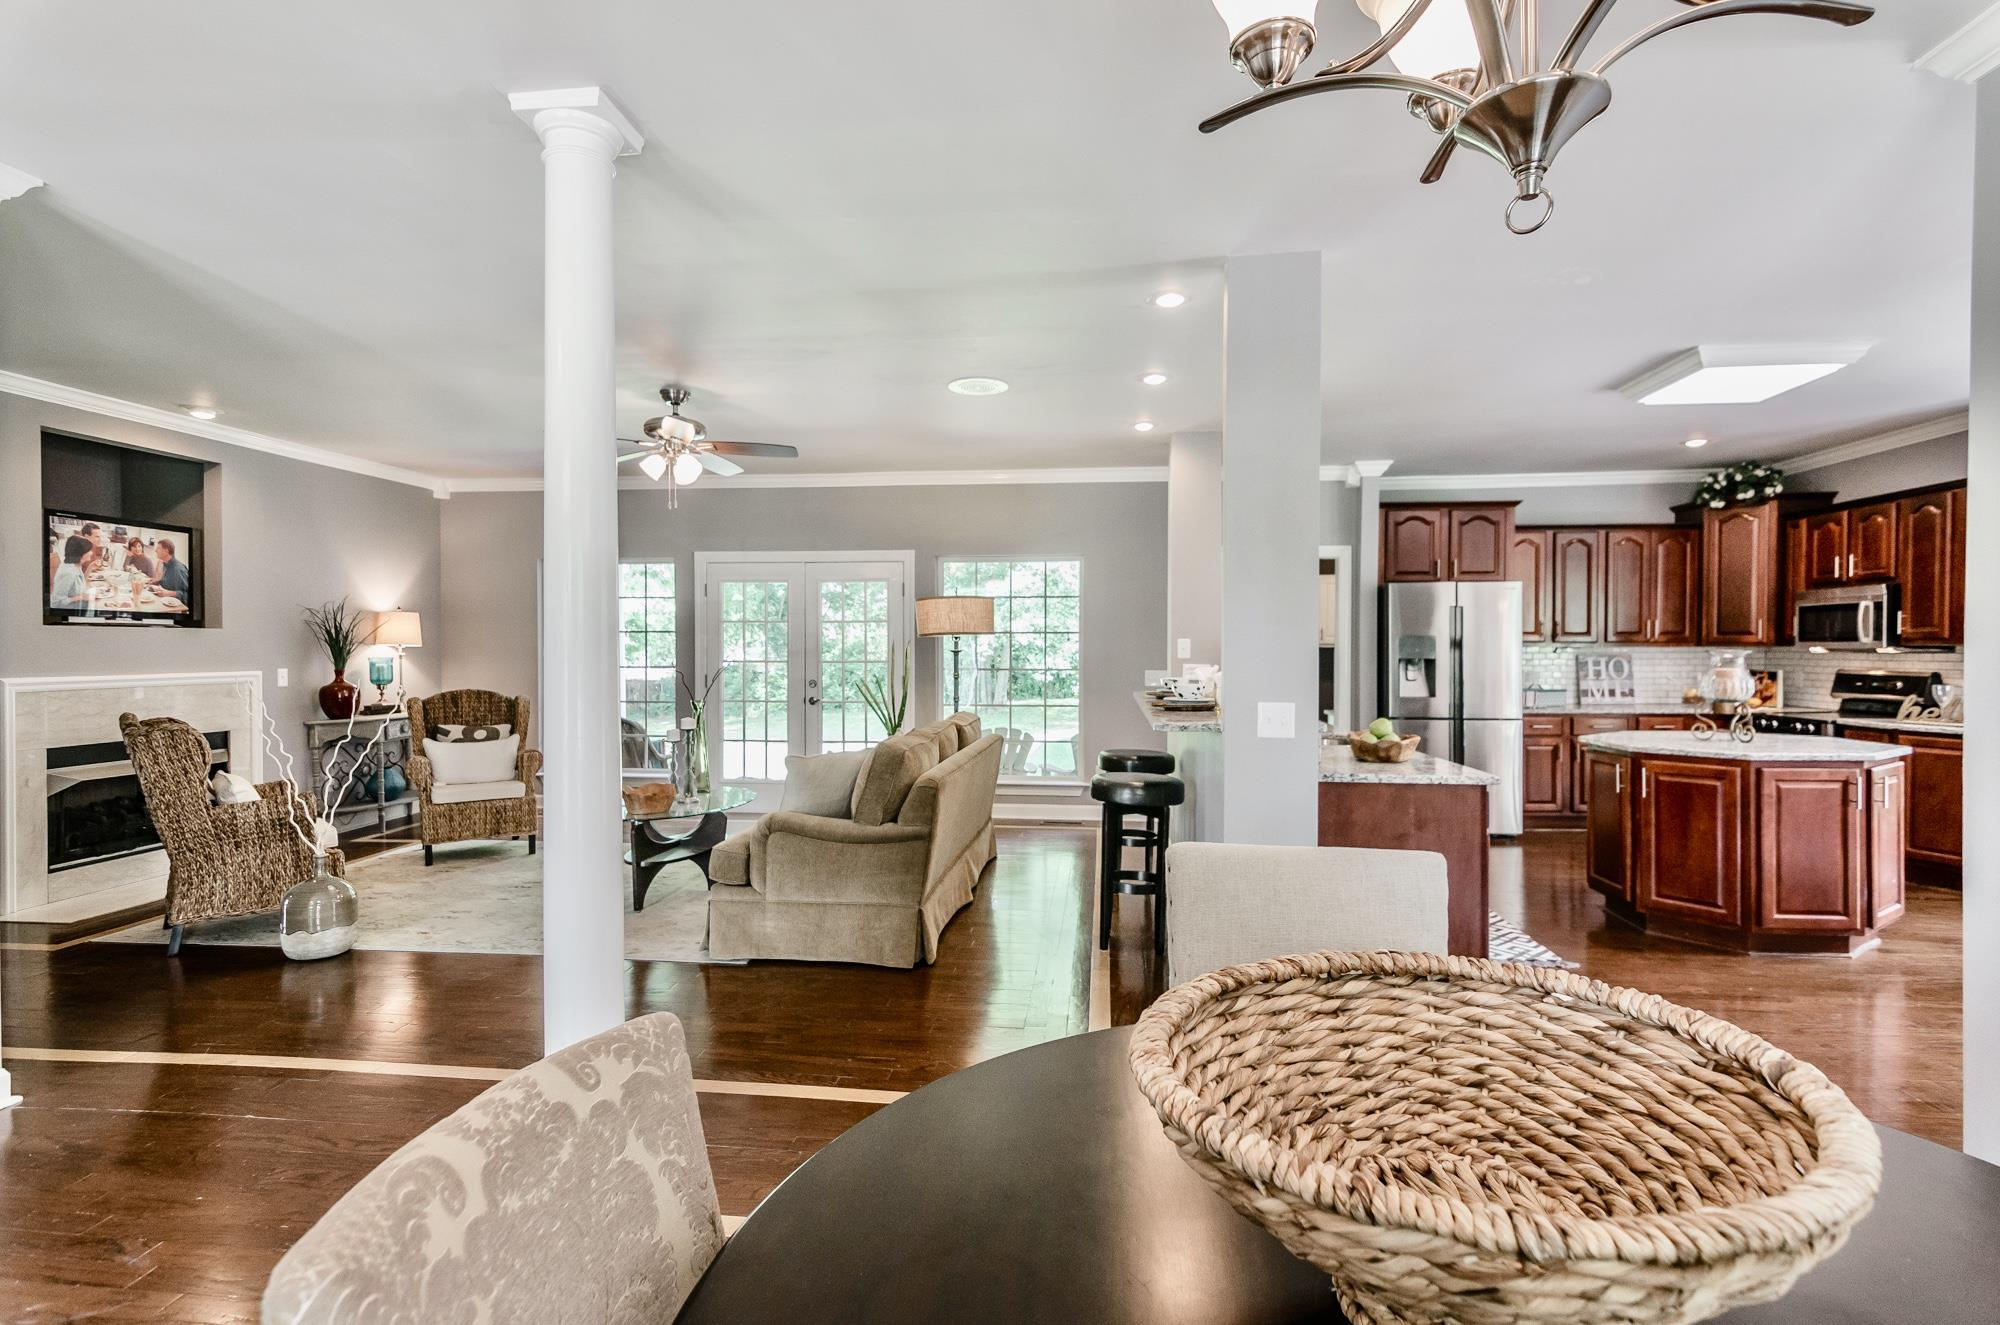 """Absolutely stunning, over 5,000 sq ft of luxury with hardwood floors and granite countertops throughout the home.   5 beds/5 full baths with another 2,000 sq ft available in basement for a studio, mother-in-law or rental apartment, or workshop.  See virtual tour at """"https://vimeo.com/269877917"""".  No HOA or Fees."""